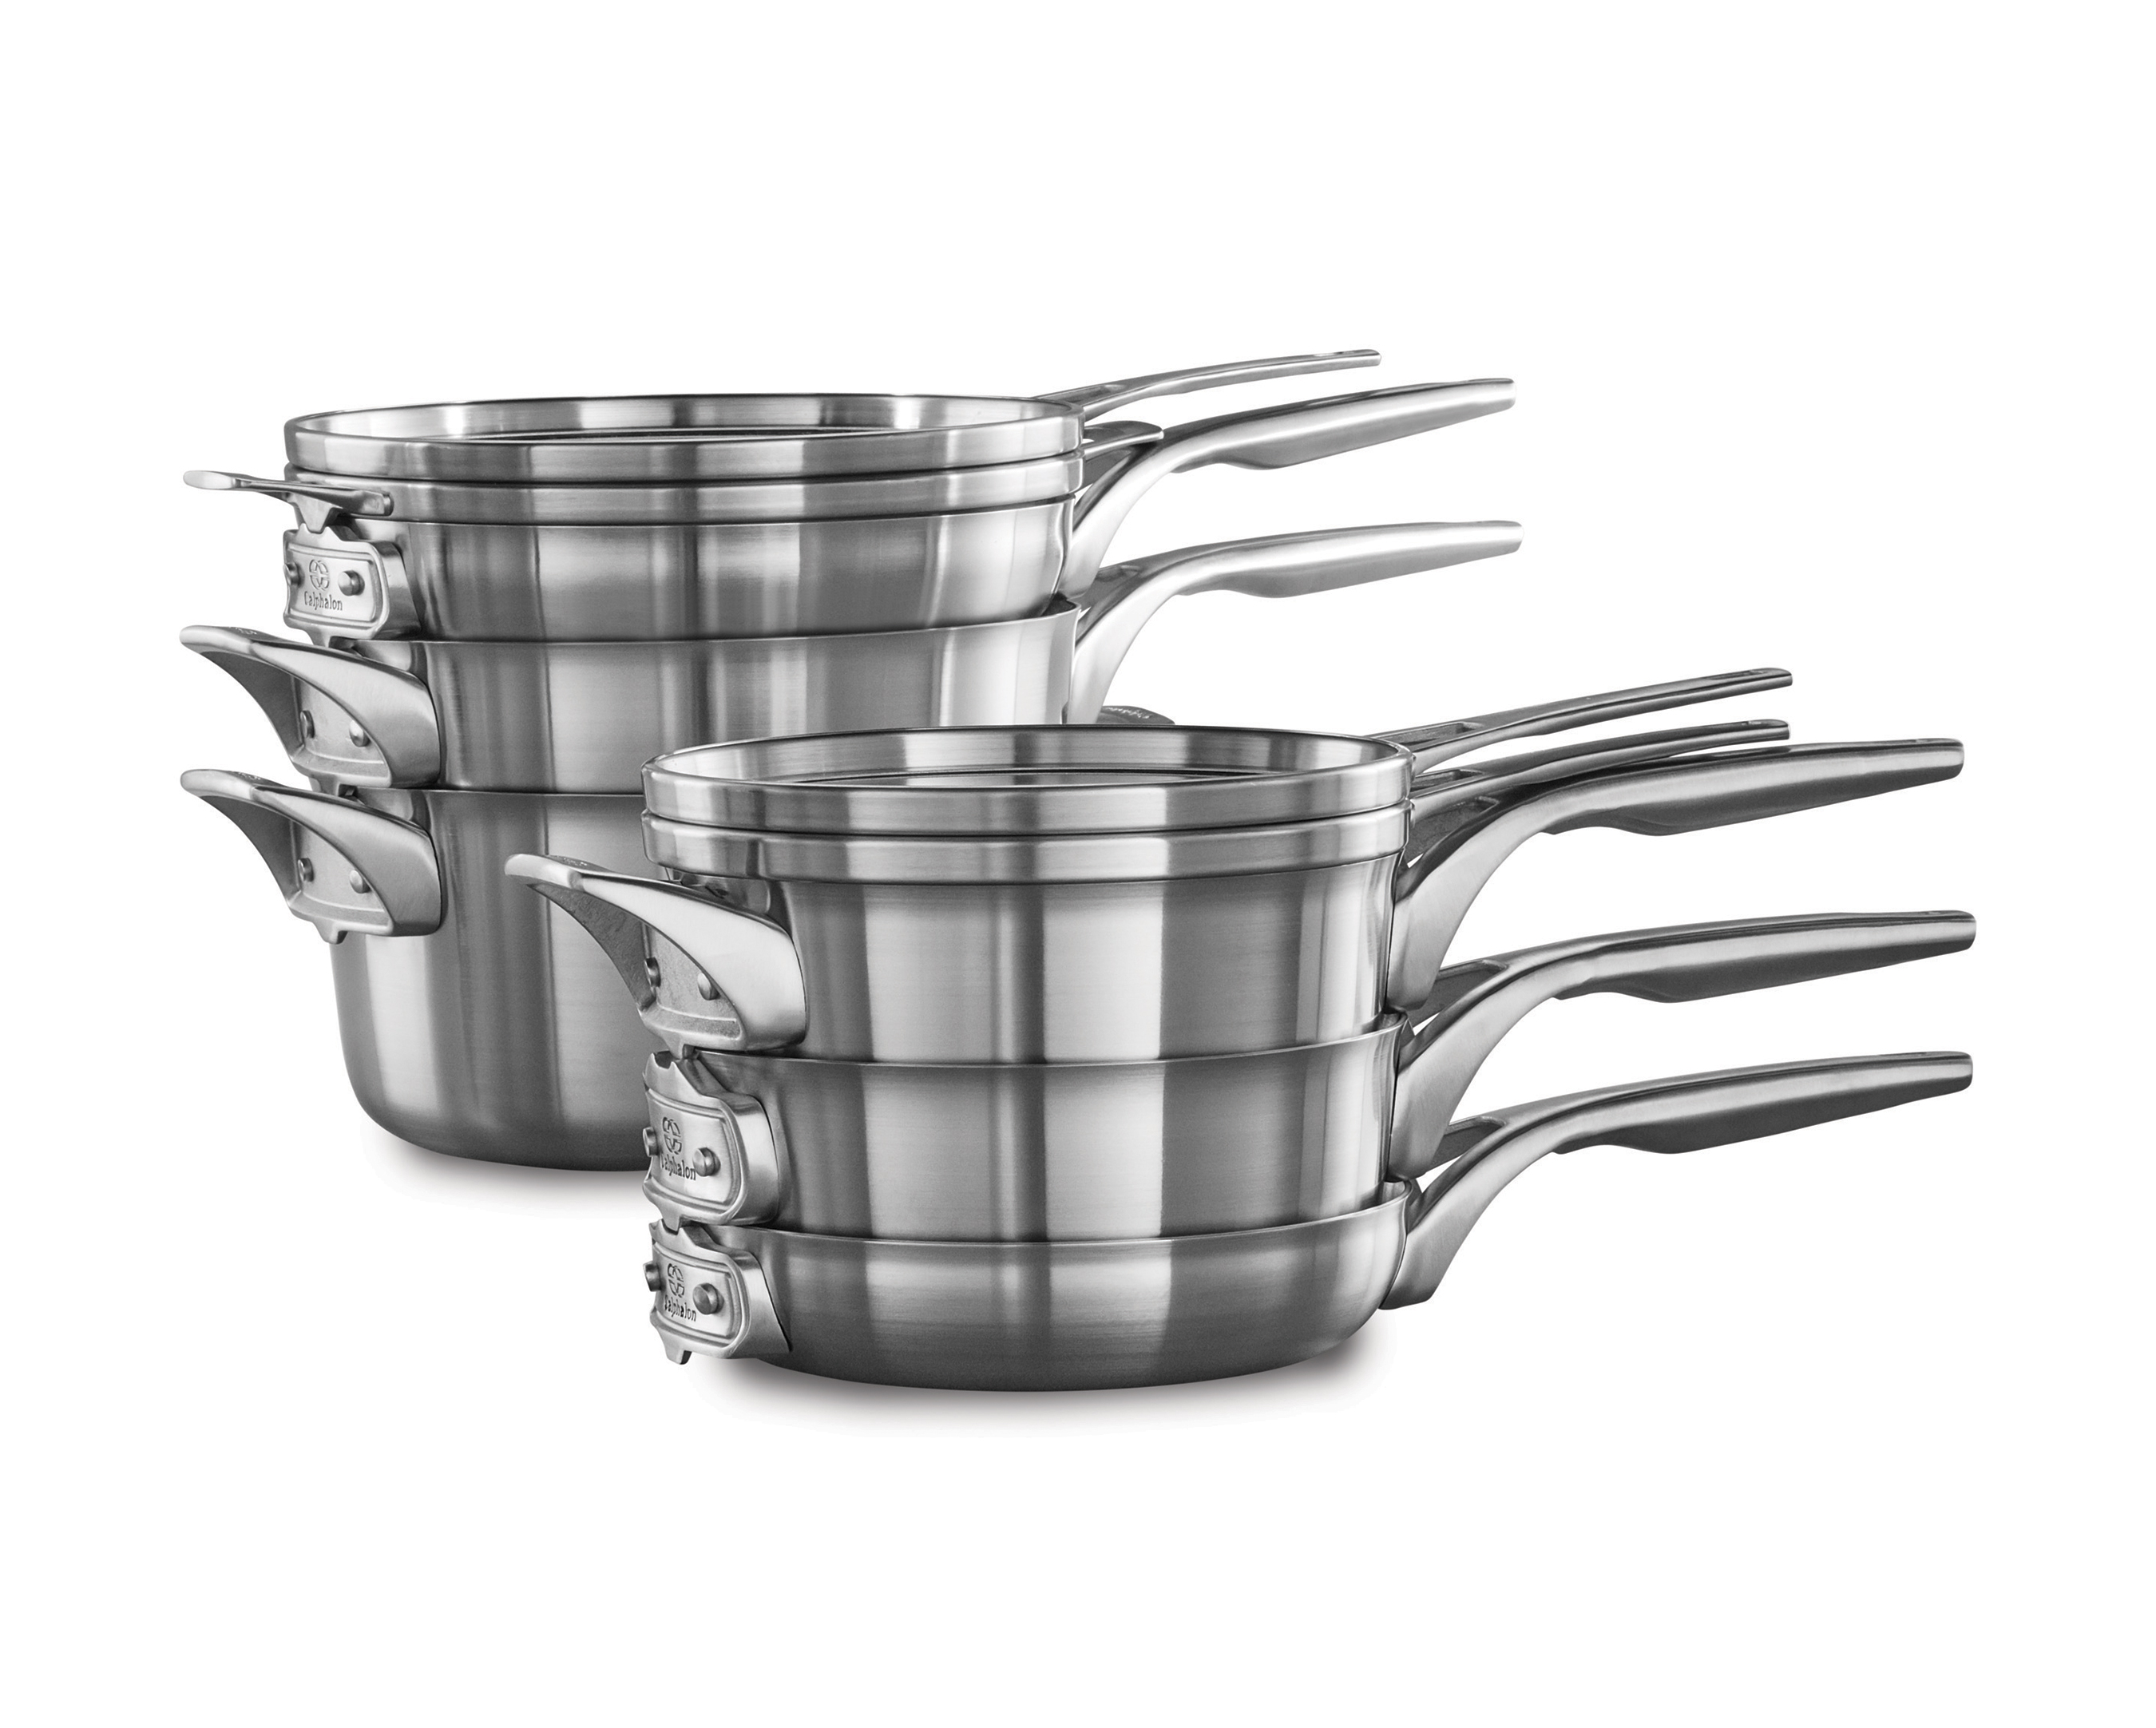 Calphalon Premier Space Saving Cookware in Stainless Steel